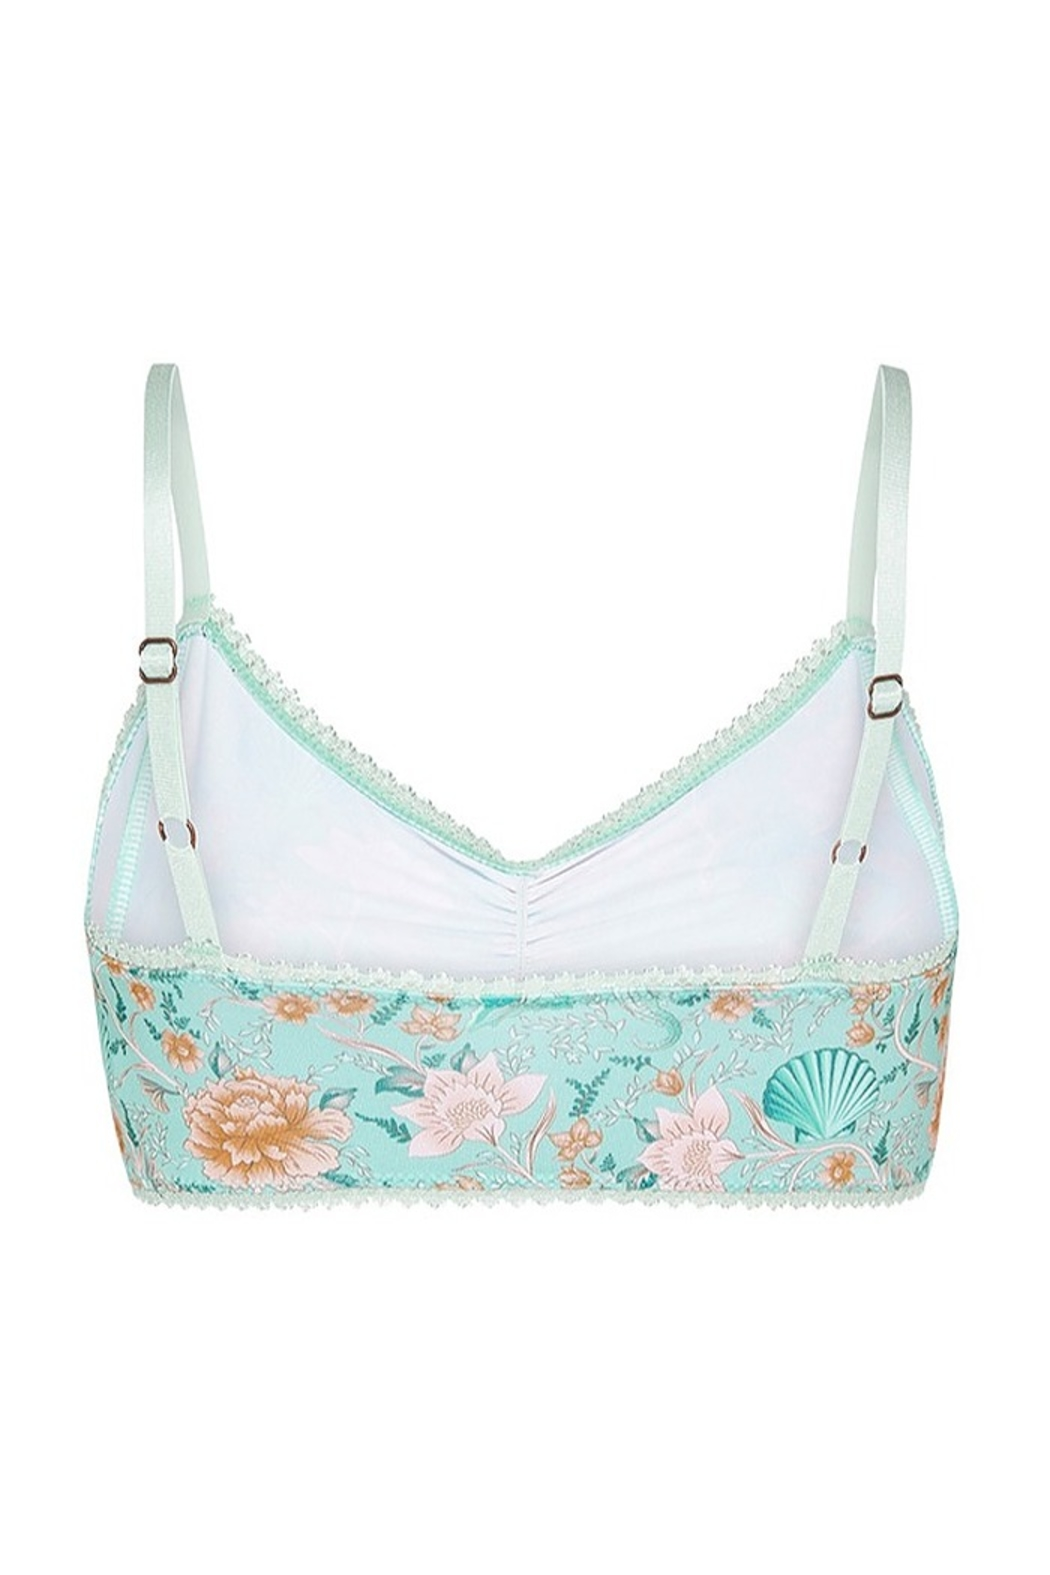 Spell & the Gypsy Collective Seashell Bralette - Seafoam - Side Cropped Image